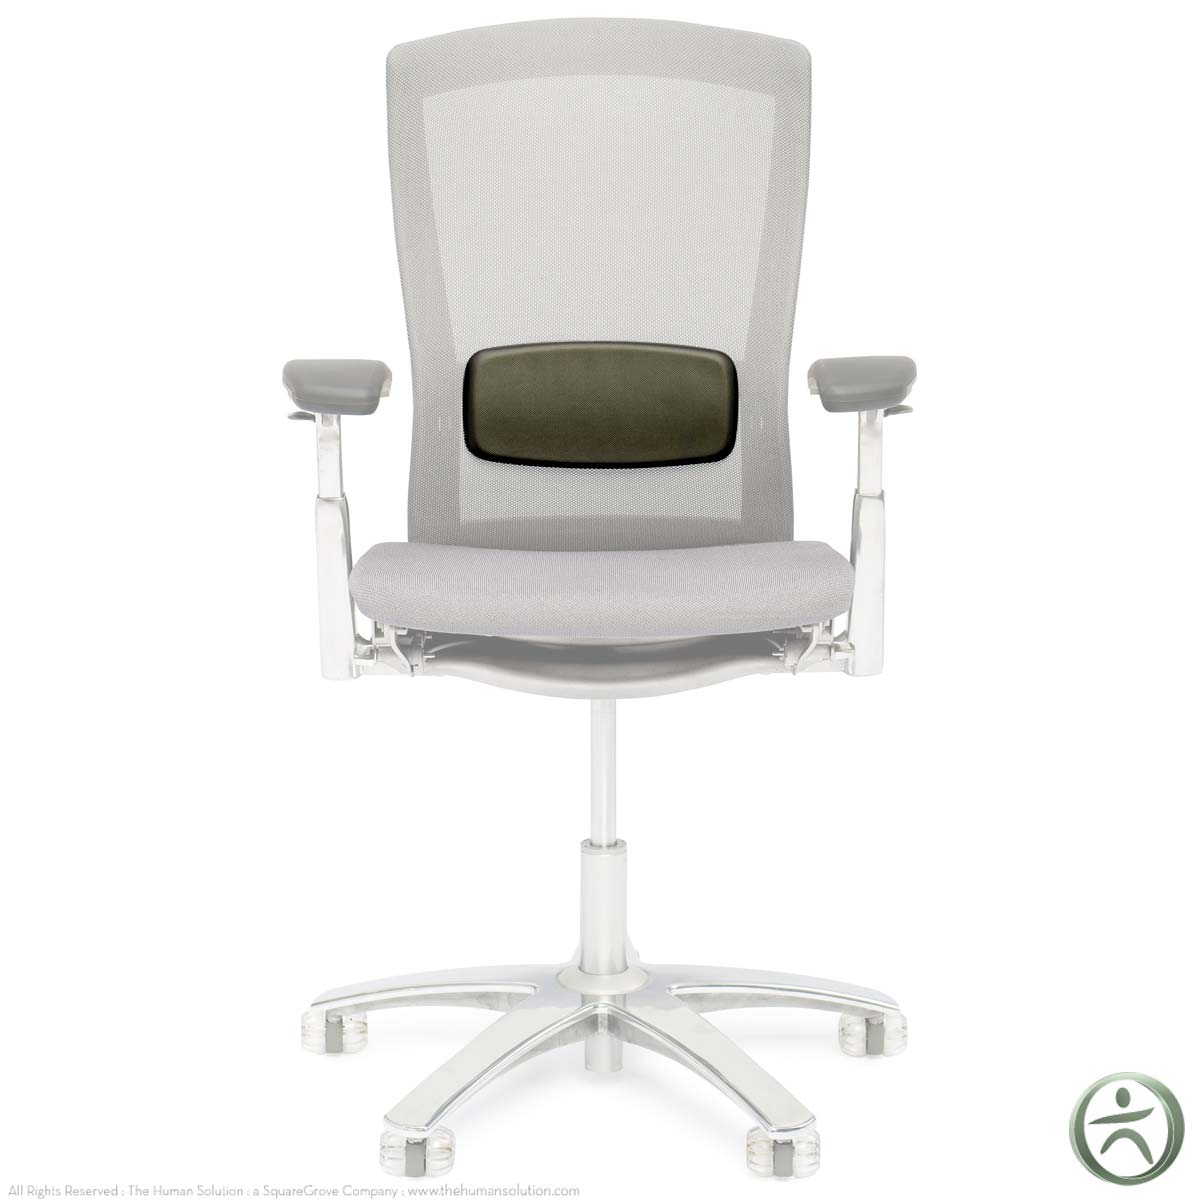 Back Support Chairs Home The Gallery For Ergonomic Office Chairs With Lumbar